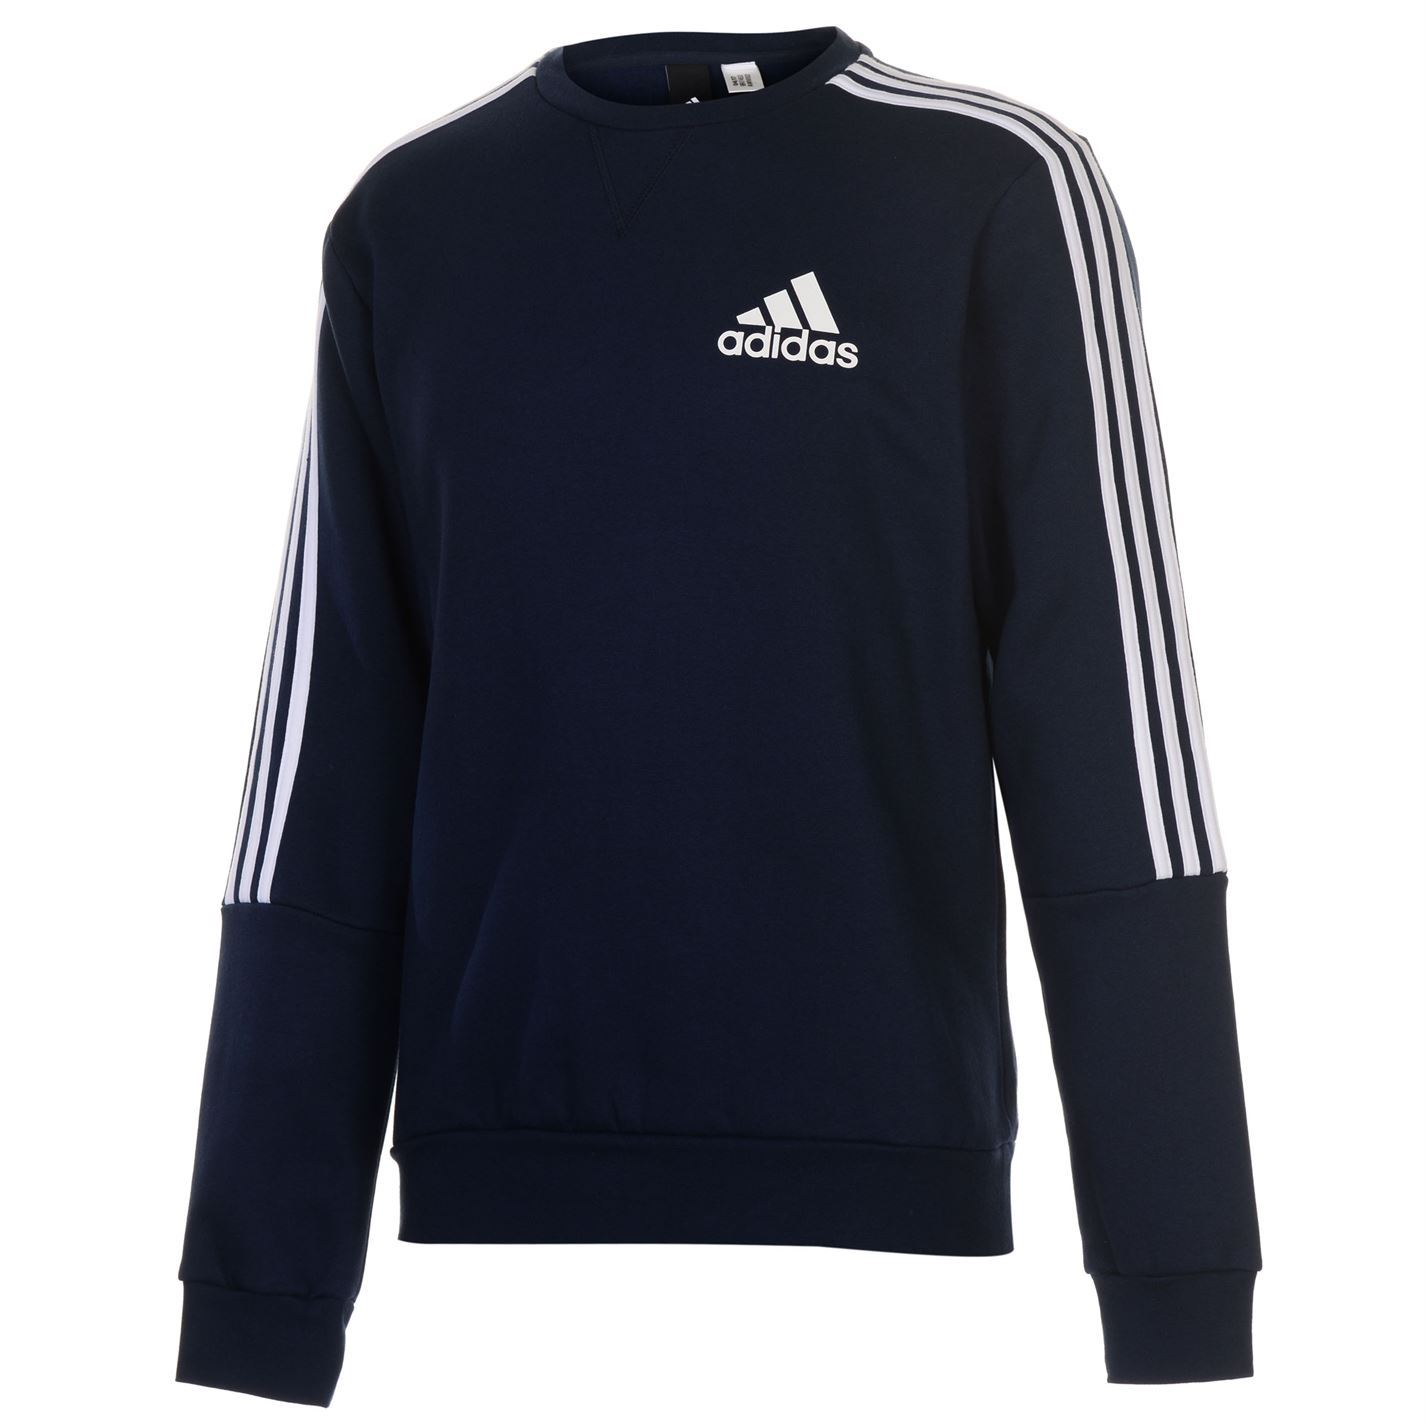 Adidas Originals 3 Stripes Crew Mens Jumper Sweater Pullover Sweatshirt New | eBay